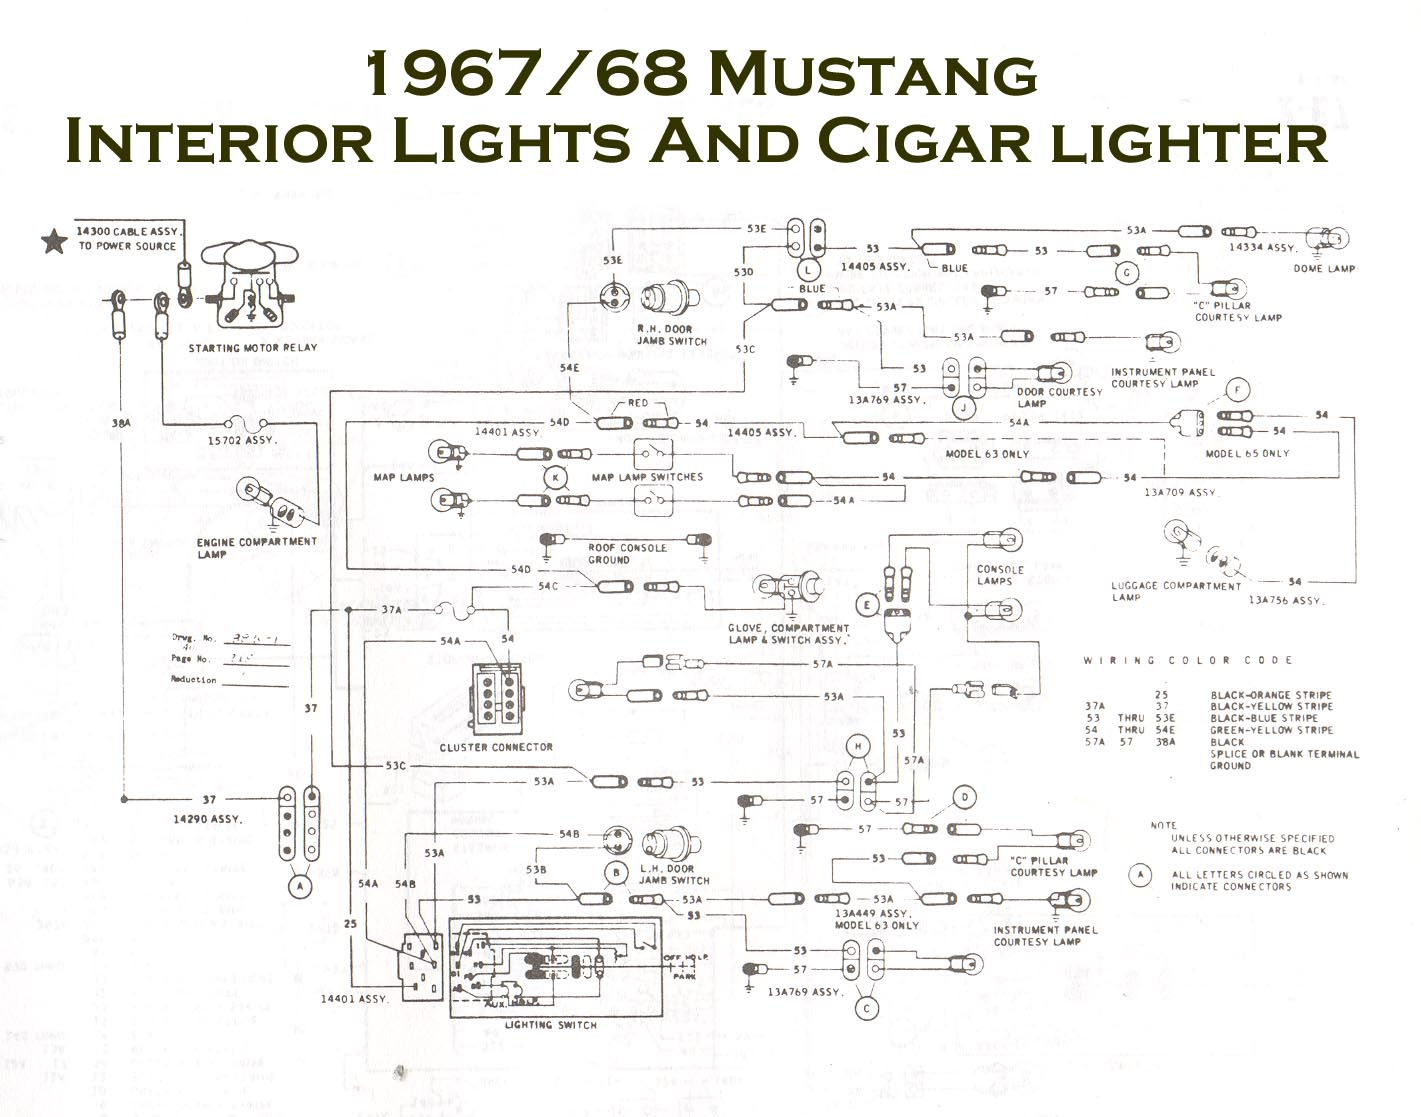 Vintage Mustang Wiring Diagrams on 1988 gmc sierra wiring diagrams, 1978 ford mustang wiring diagrams, 1965 ford mustang wiring diagrams, 2007 ford mustang wiring diagrams, 2000 jeep wrangler wiring diagrams, 2001 honda civic wiring diagrams, 1988 ford alternator wiring diagram, 2003 ford mustang wiring diagrams, 1988 ford ranger radio wiring diagram, 1988 ford pickup wiring diagram, 1988 ford ranger ignition control module, 1969 ford mustang wiring diagrams, 1988 ford f-250 wiring diagram, 1988 ford f-150 wiring diagram, 1988 cadillac wiring diagrams, 2000 ford mustang wiring diagrams, 1998 ford mustang wiring diagrams, 1997 ford mustang wiring diagrams, 1988 ford bronco wiring diagram, 1964 ford mustang wiring diagrams,